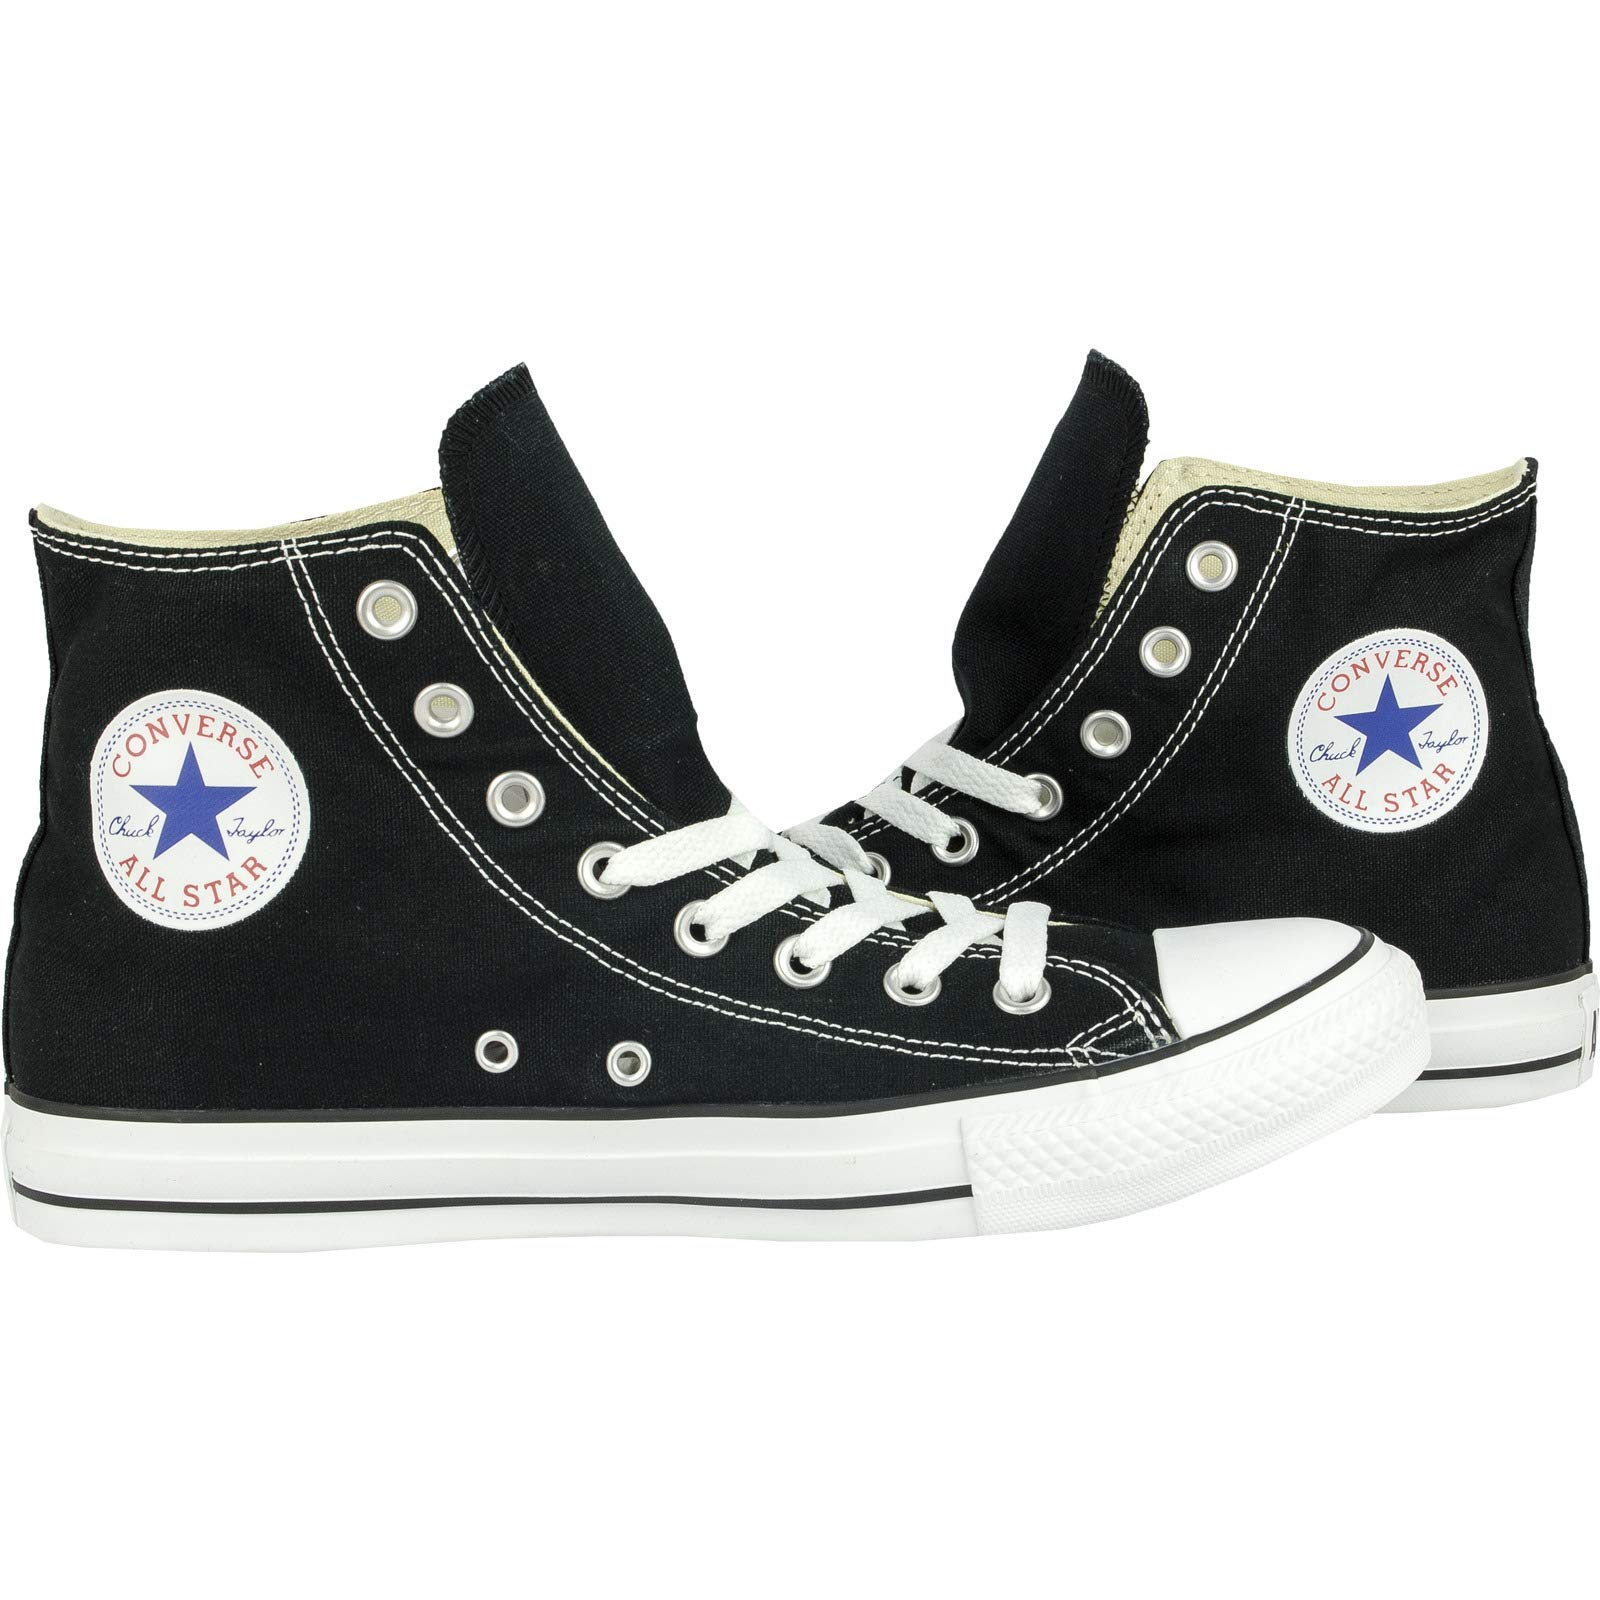 Chuck Taylor All Star Canvas High Top, Black, 4 M US by Converse (Image #7)